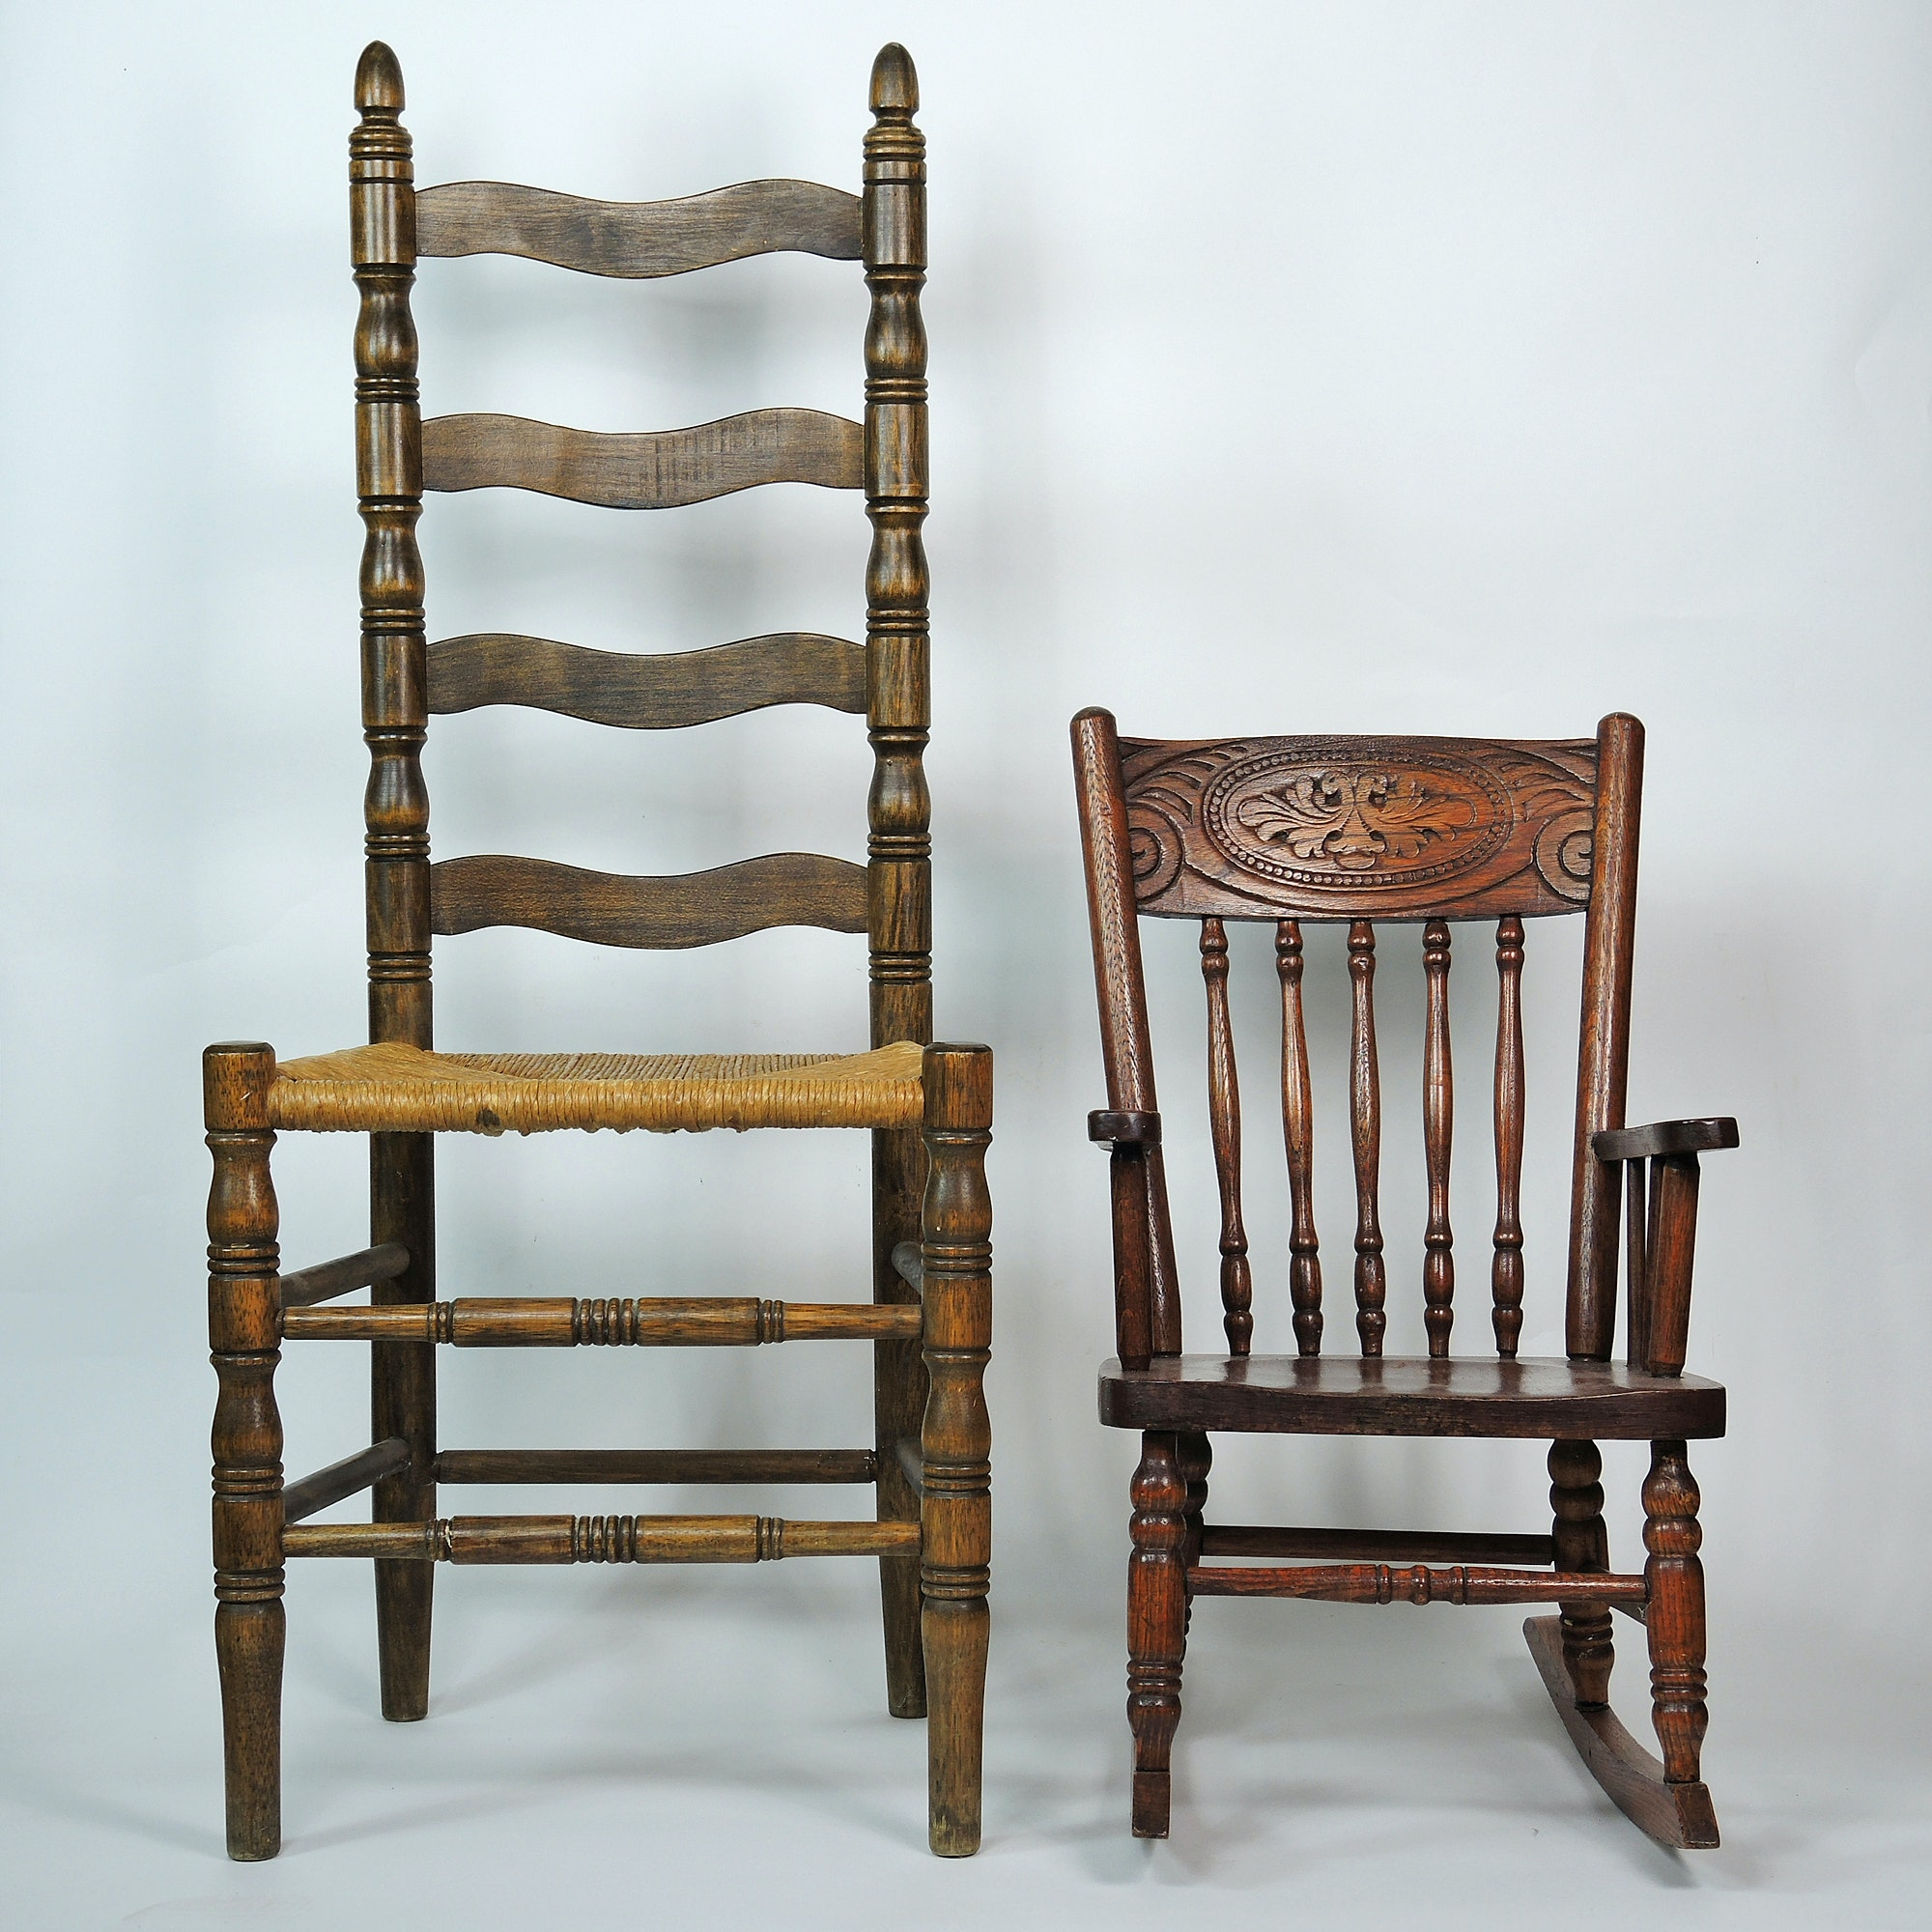 Vintage Ladder Back Chair and Child's Rocker